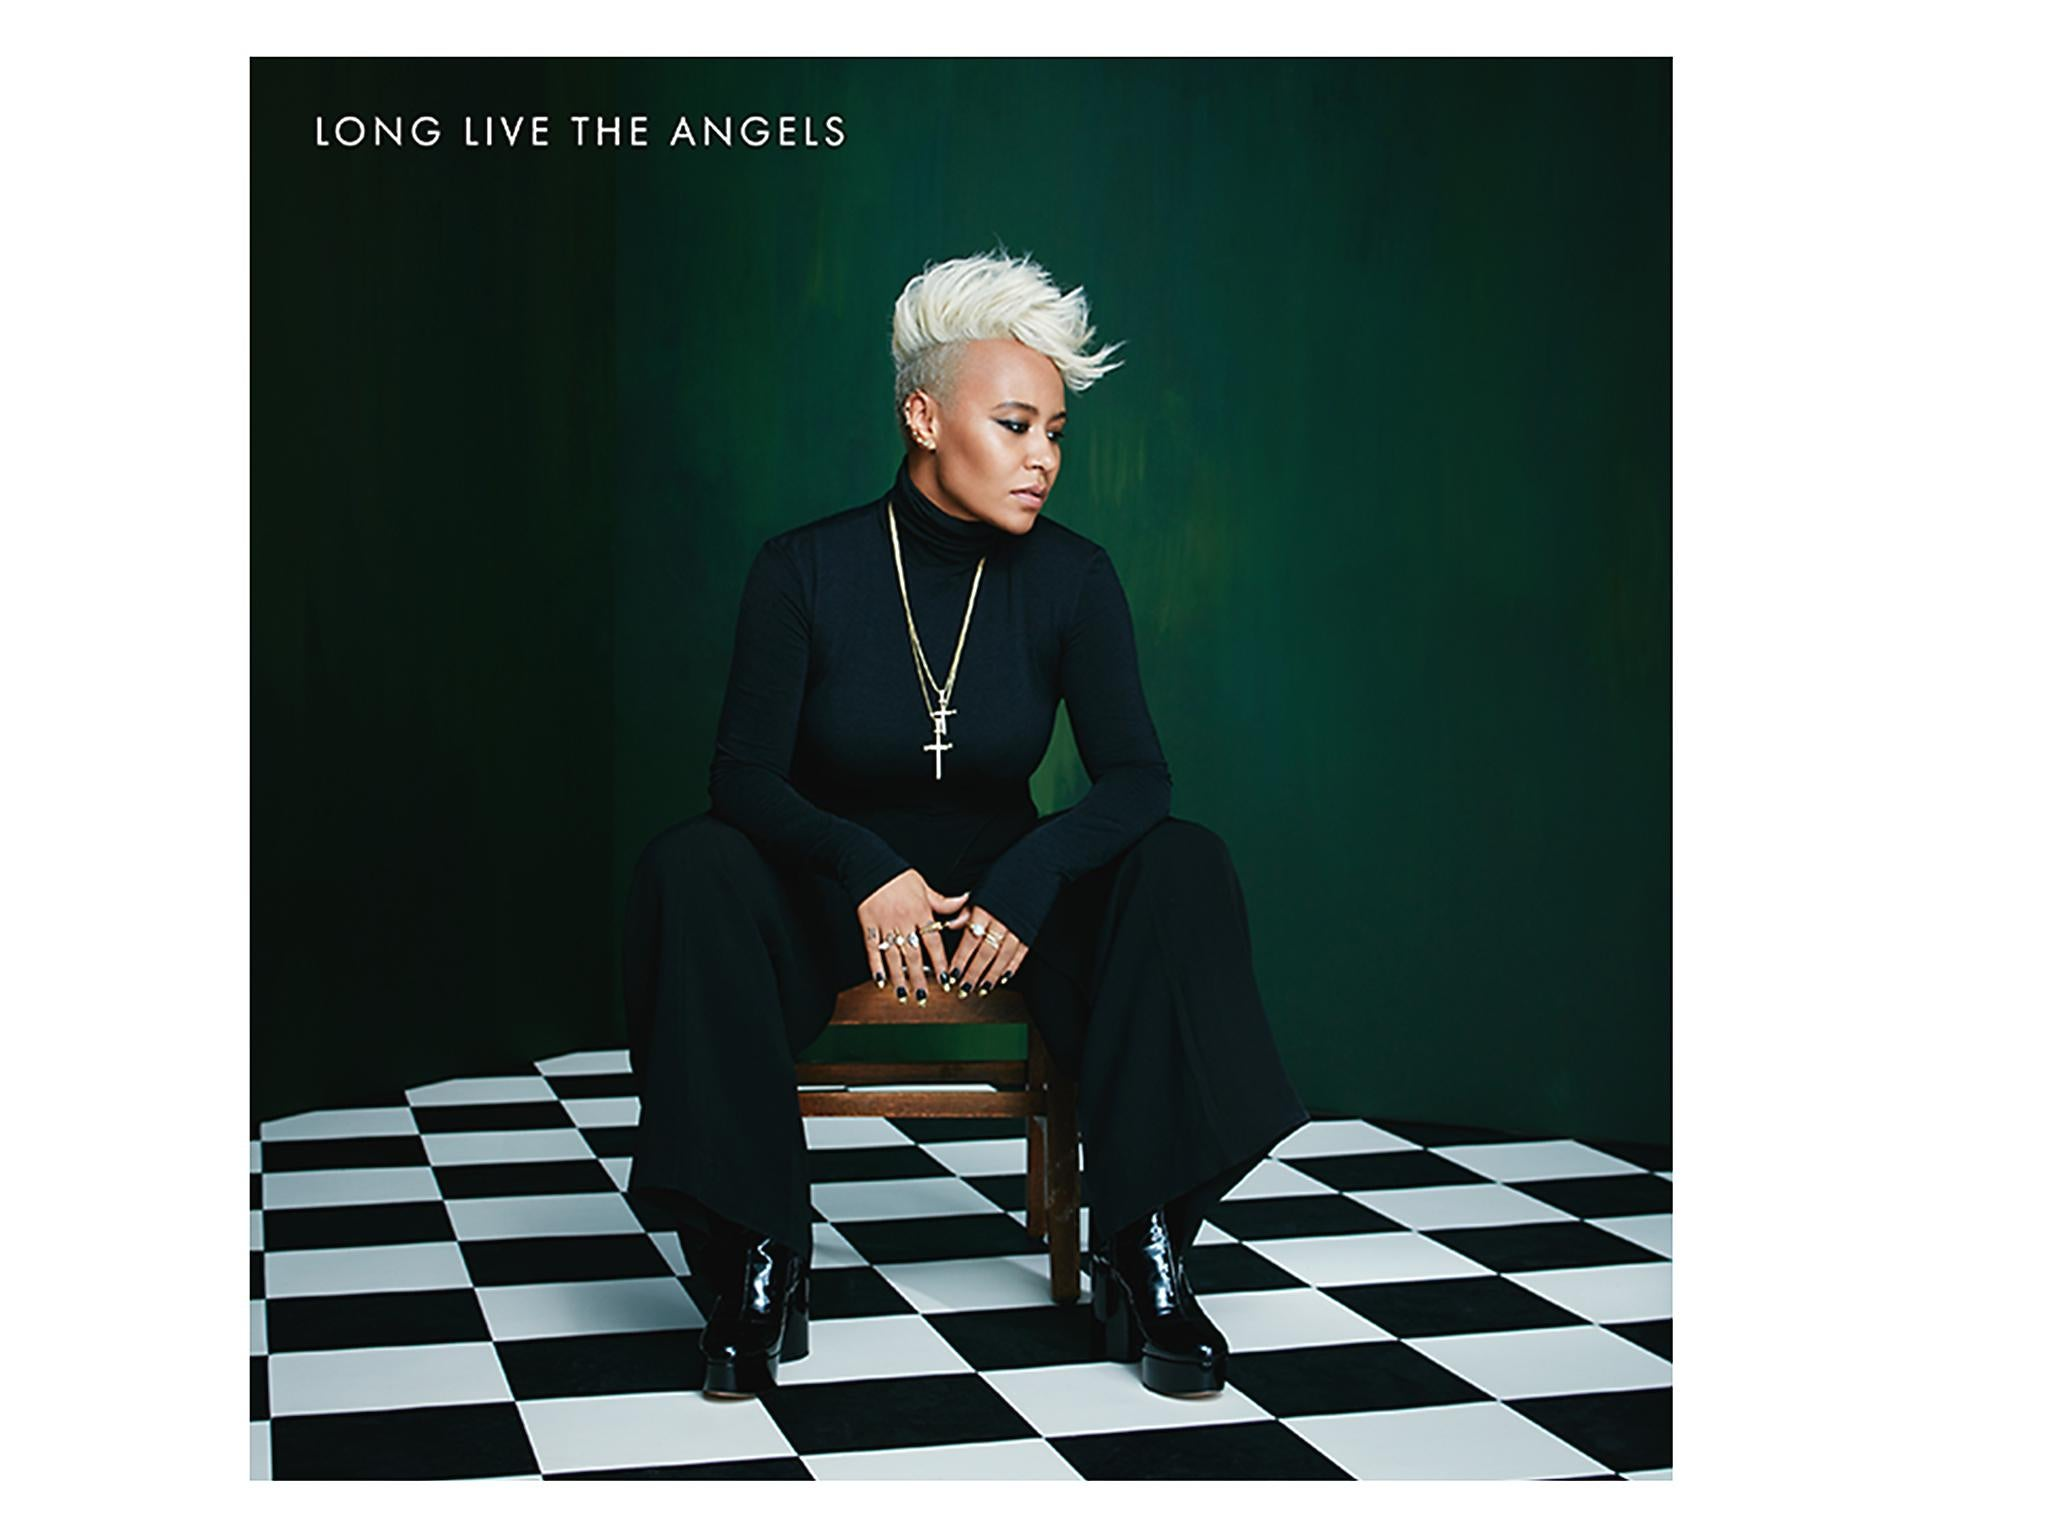 Album reviews: Emeli Sande - Long Live The Angels, Sting - 57th & 9th, Alicia Keys - Here, Simple Minds - Acoustic